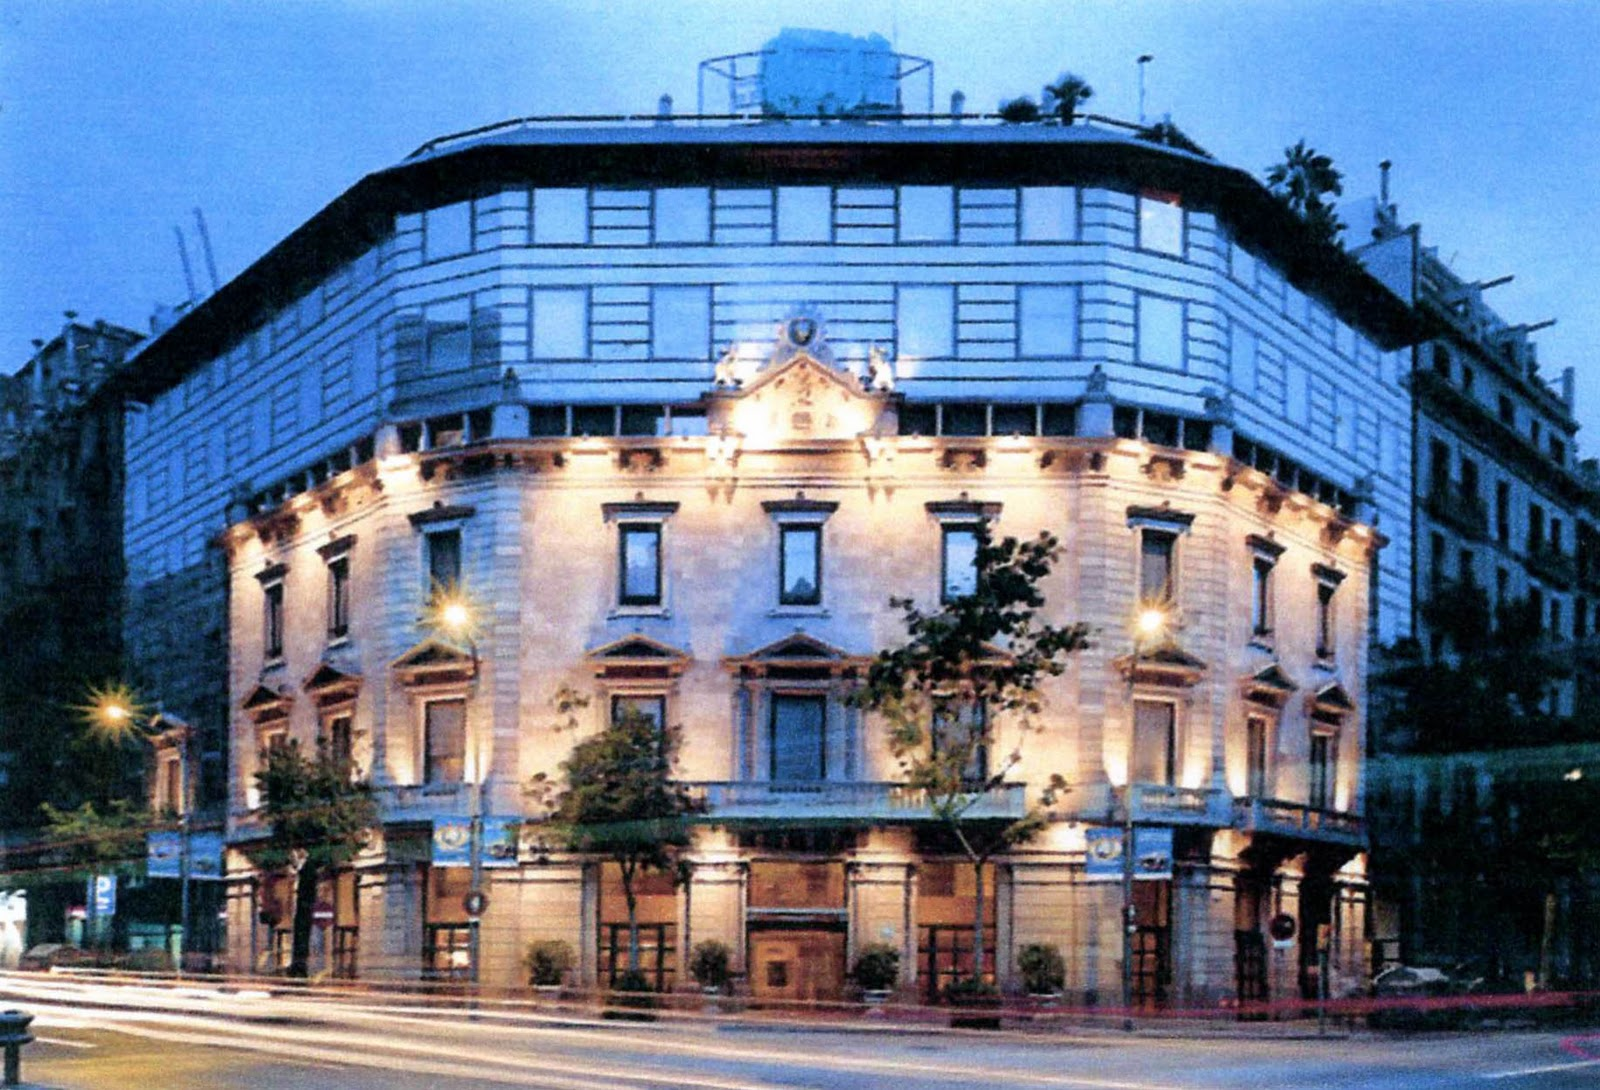 Hotelsforsaleinspain 5 star luxury hotel for sale in for 5 star luxury hotels